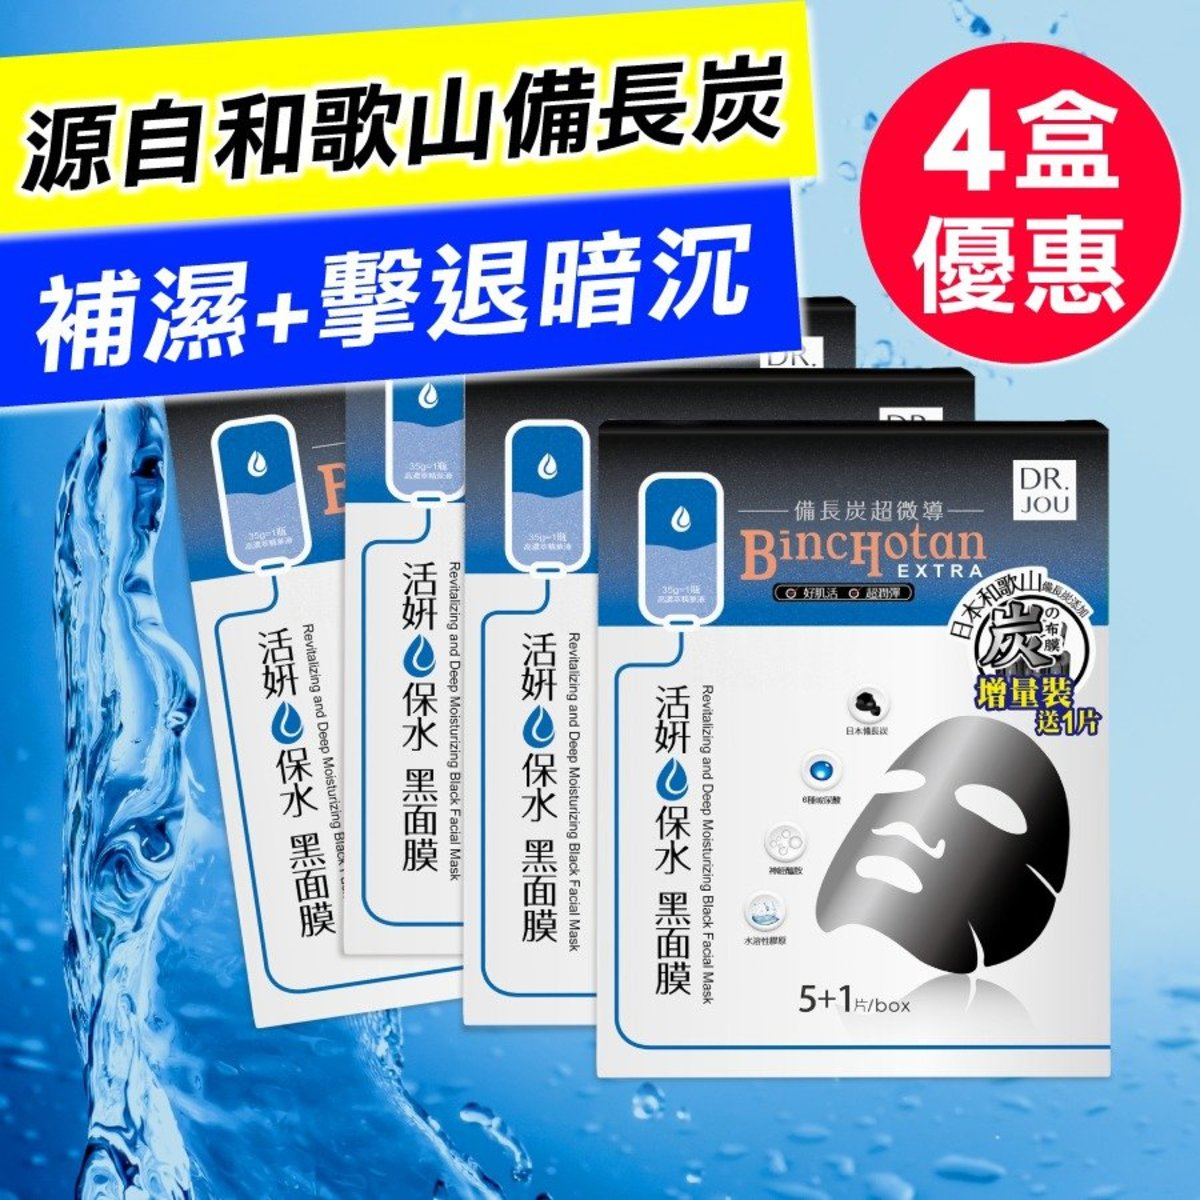 Revitalizing and Deep Moisturizing Black Facial Mask (5+1pcs) x 4